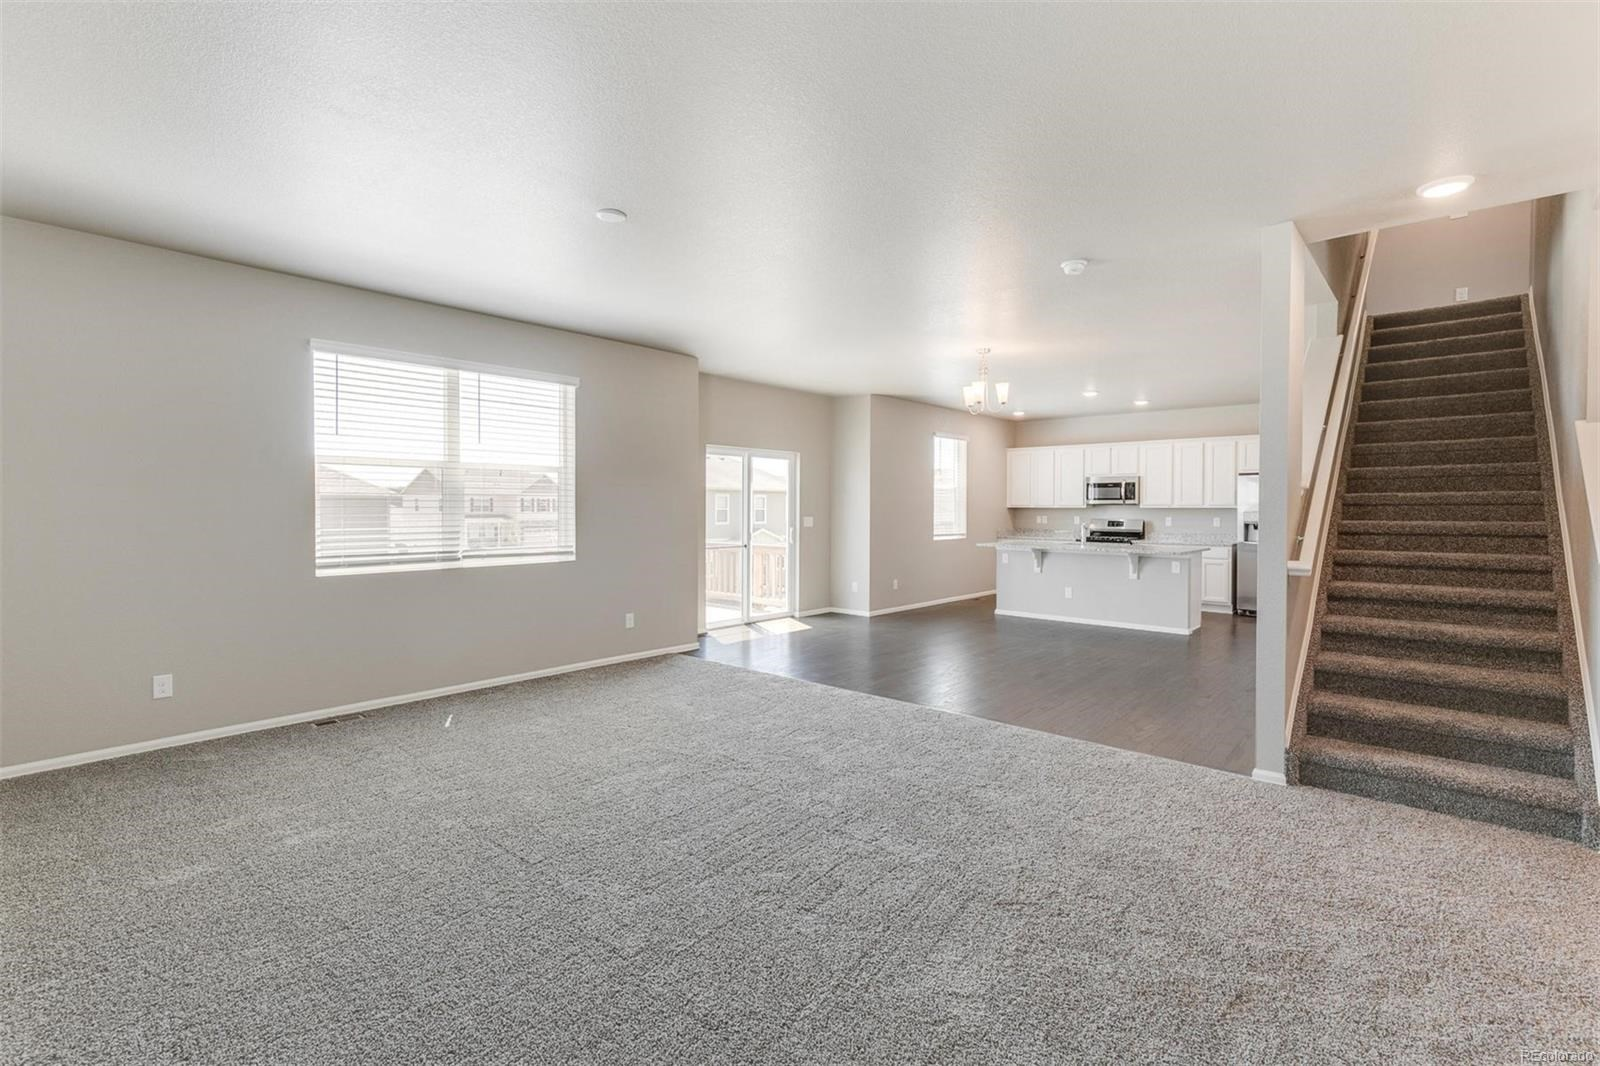 MLS# 3645271 - 3 - 6915 Grainery Court, Timnath, CO 80547